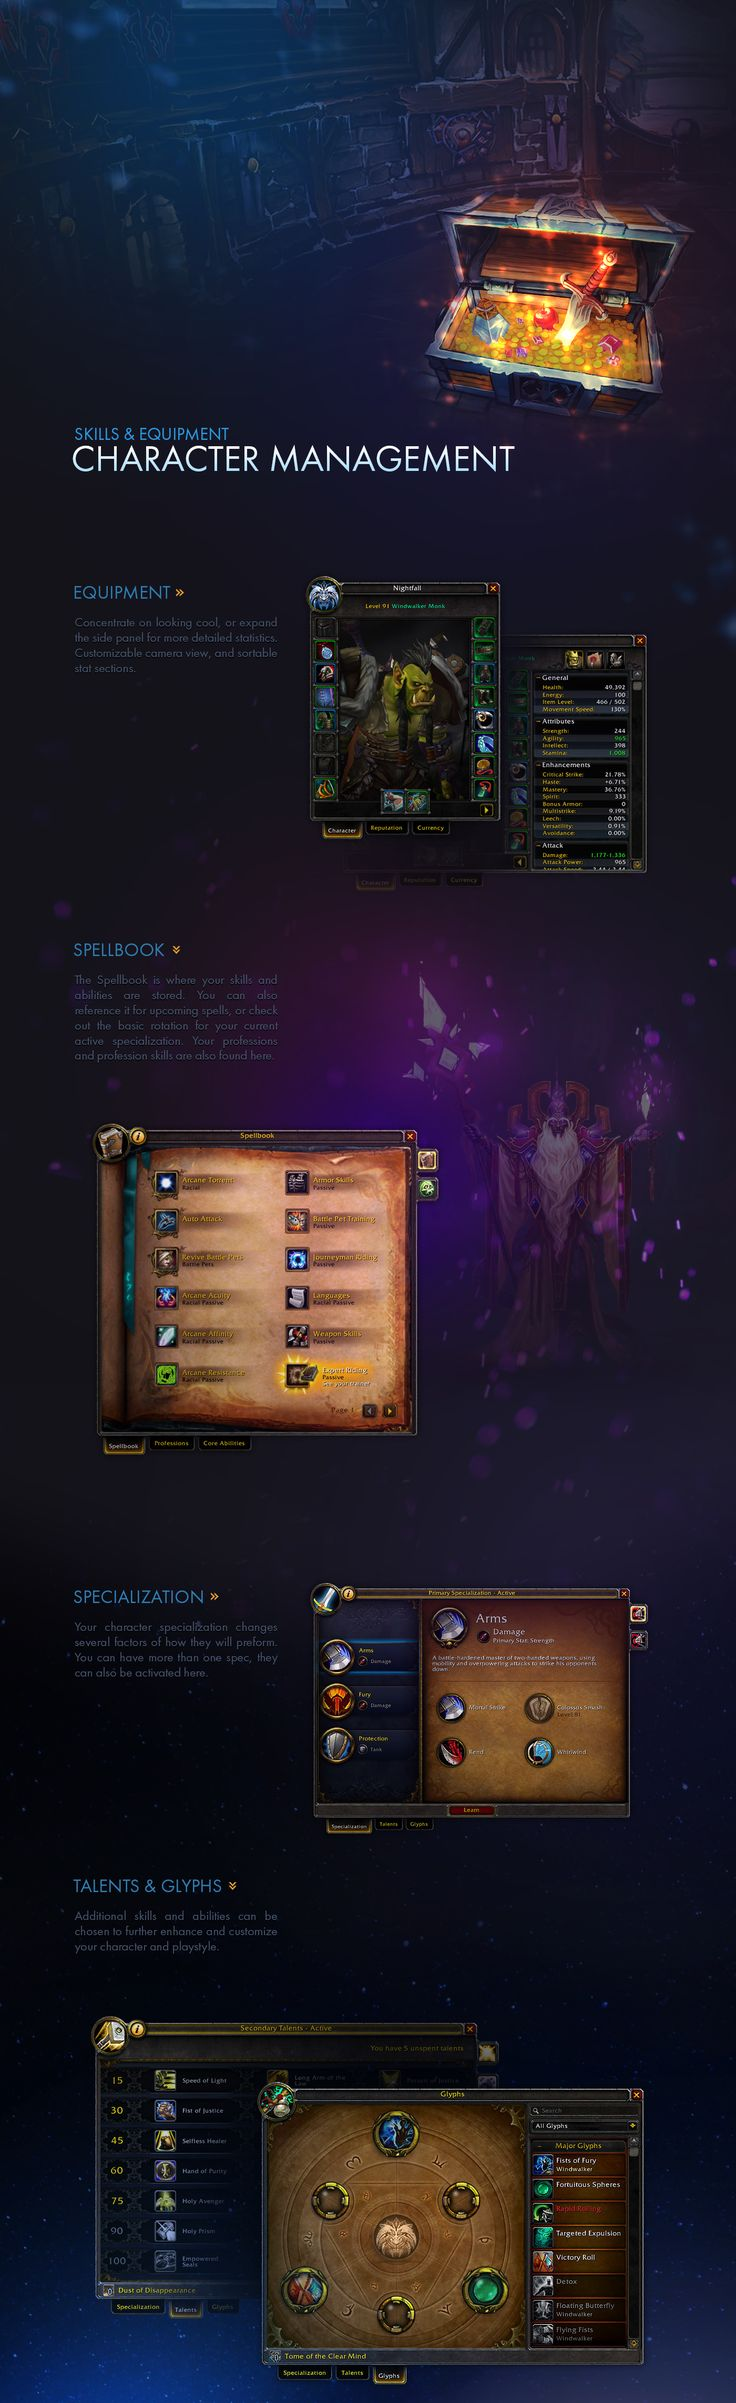 I started work on World of Warcraft during the Wrath of the Lich King expansion. Along with the UI team, we crafted the look and feel for new UI designs and game features.